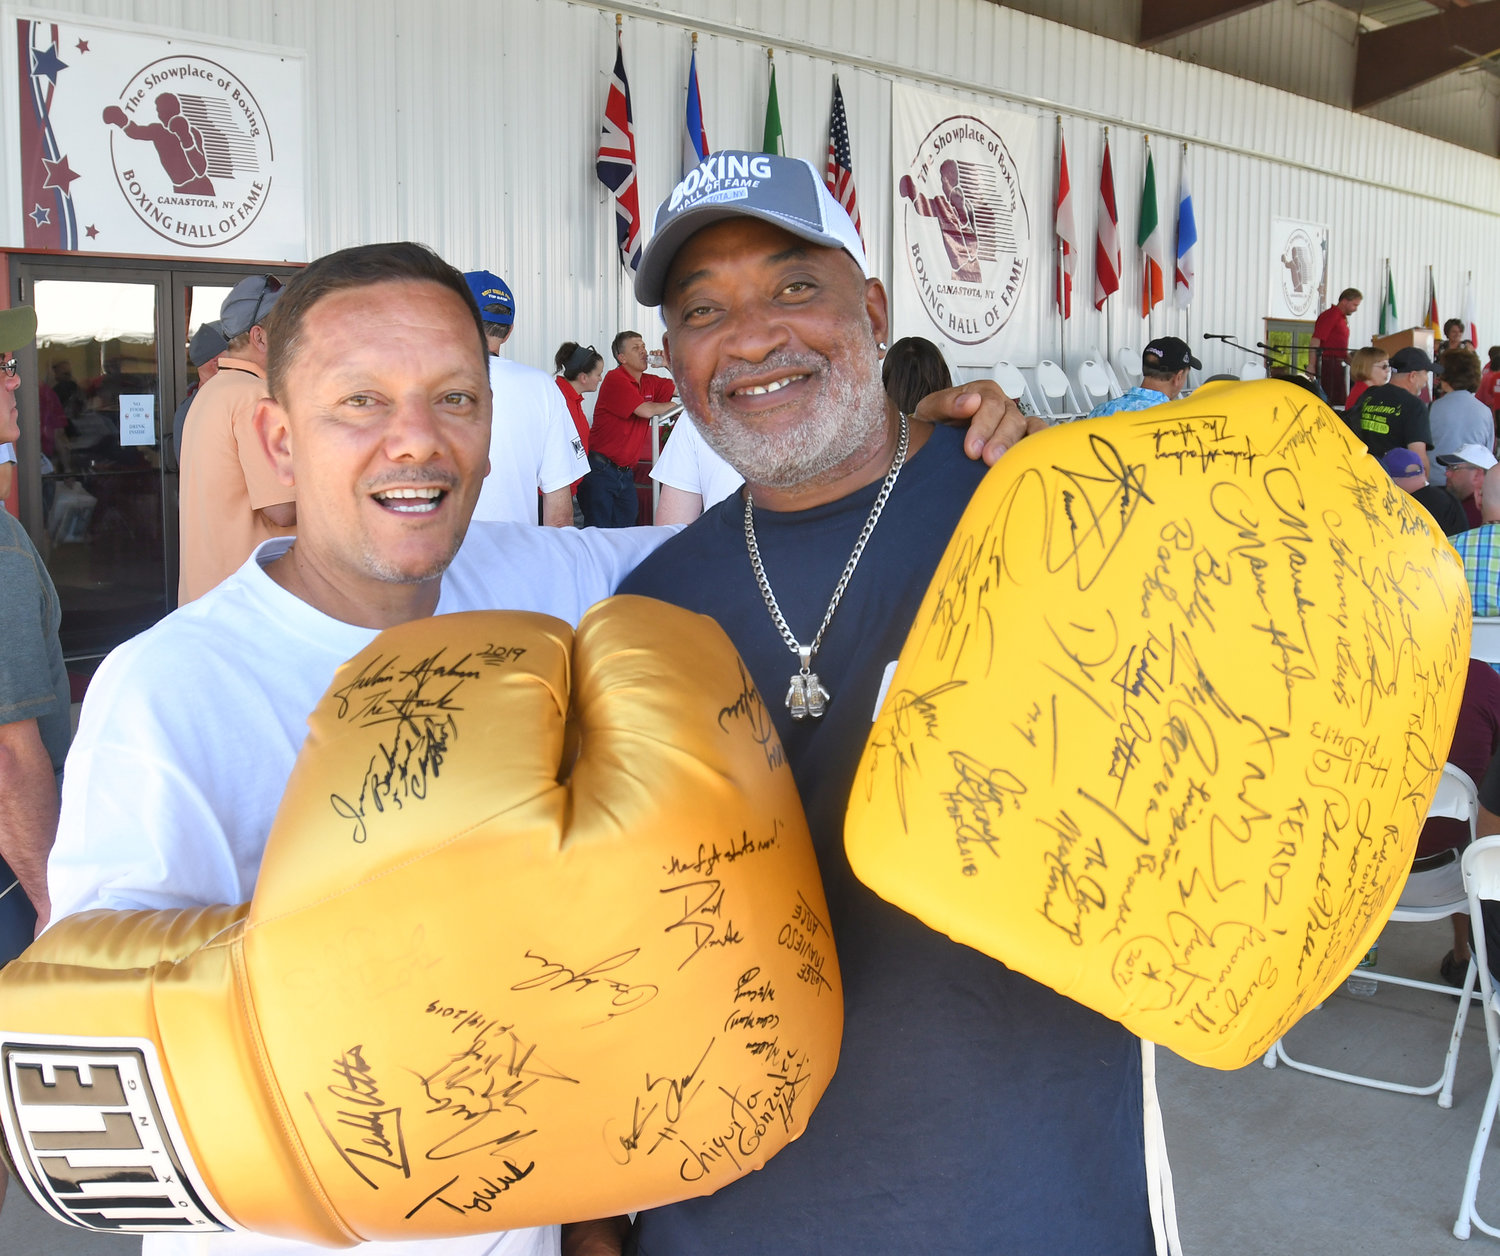 ALL SMILES — Antonio Ocasio and Albert Suarez from the Bronx hold up their big boxing gloves at the International Boxing Hall of Fame in Canastota on Friday afternoon. The men were looking forward to adding to their autograph collection during Boxing Hall of Fame weekend.